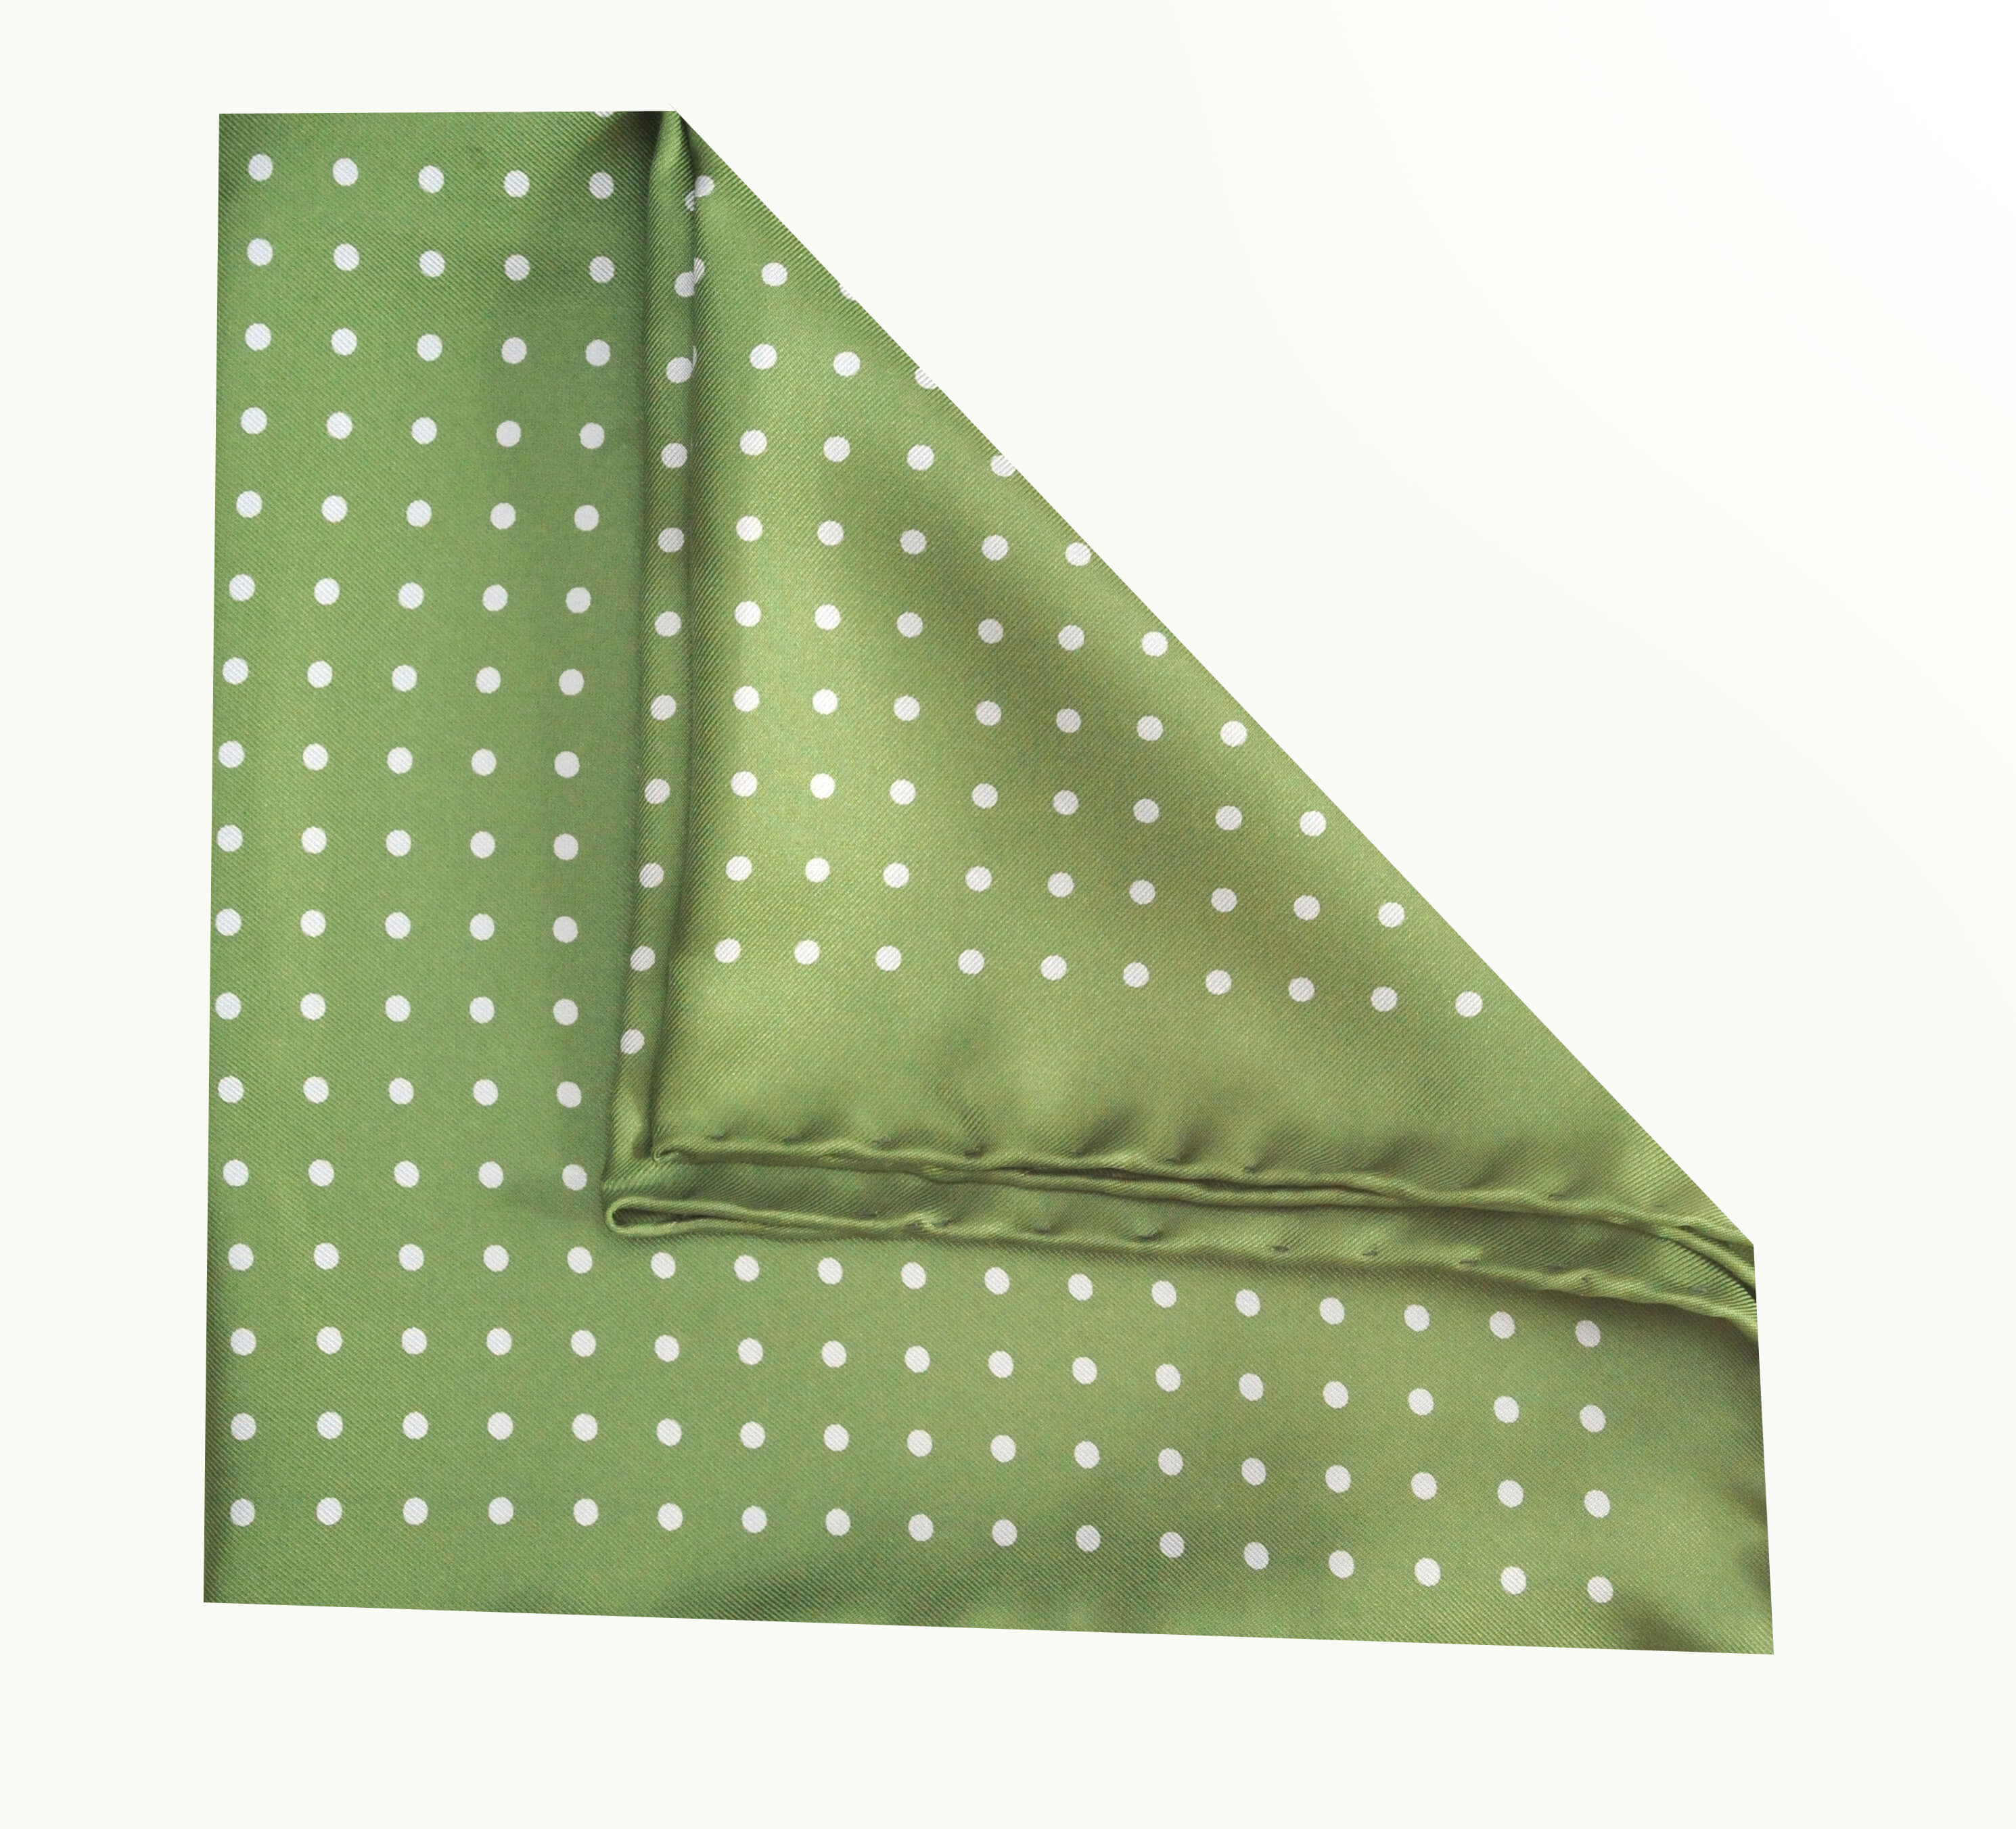 Jack - Polka Dot Silk Pocket Square in Green with Blue Spots